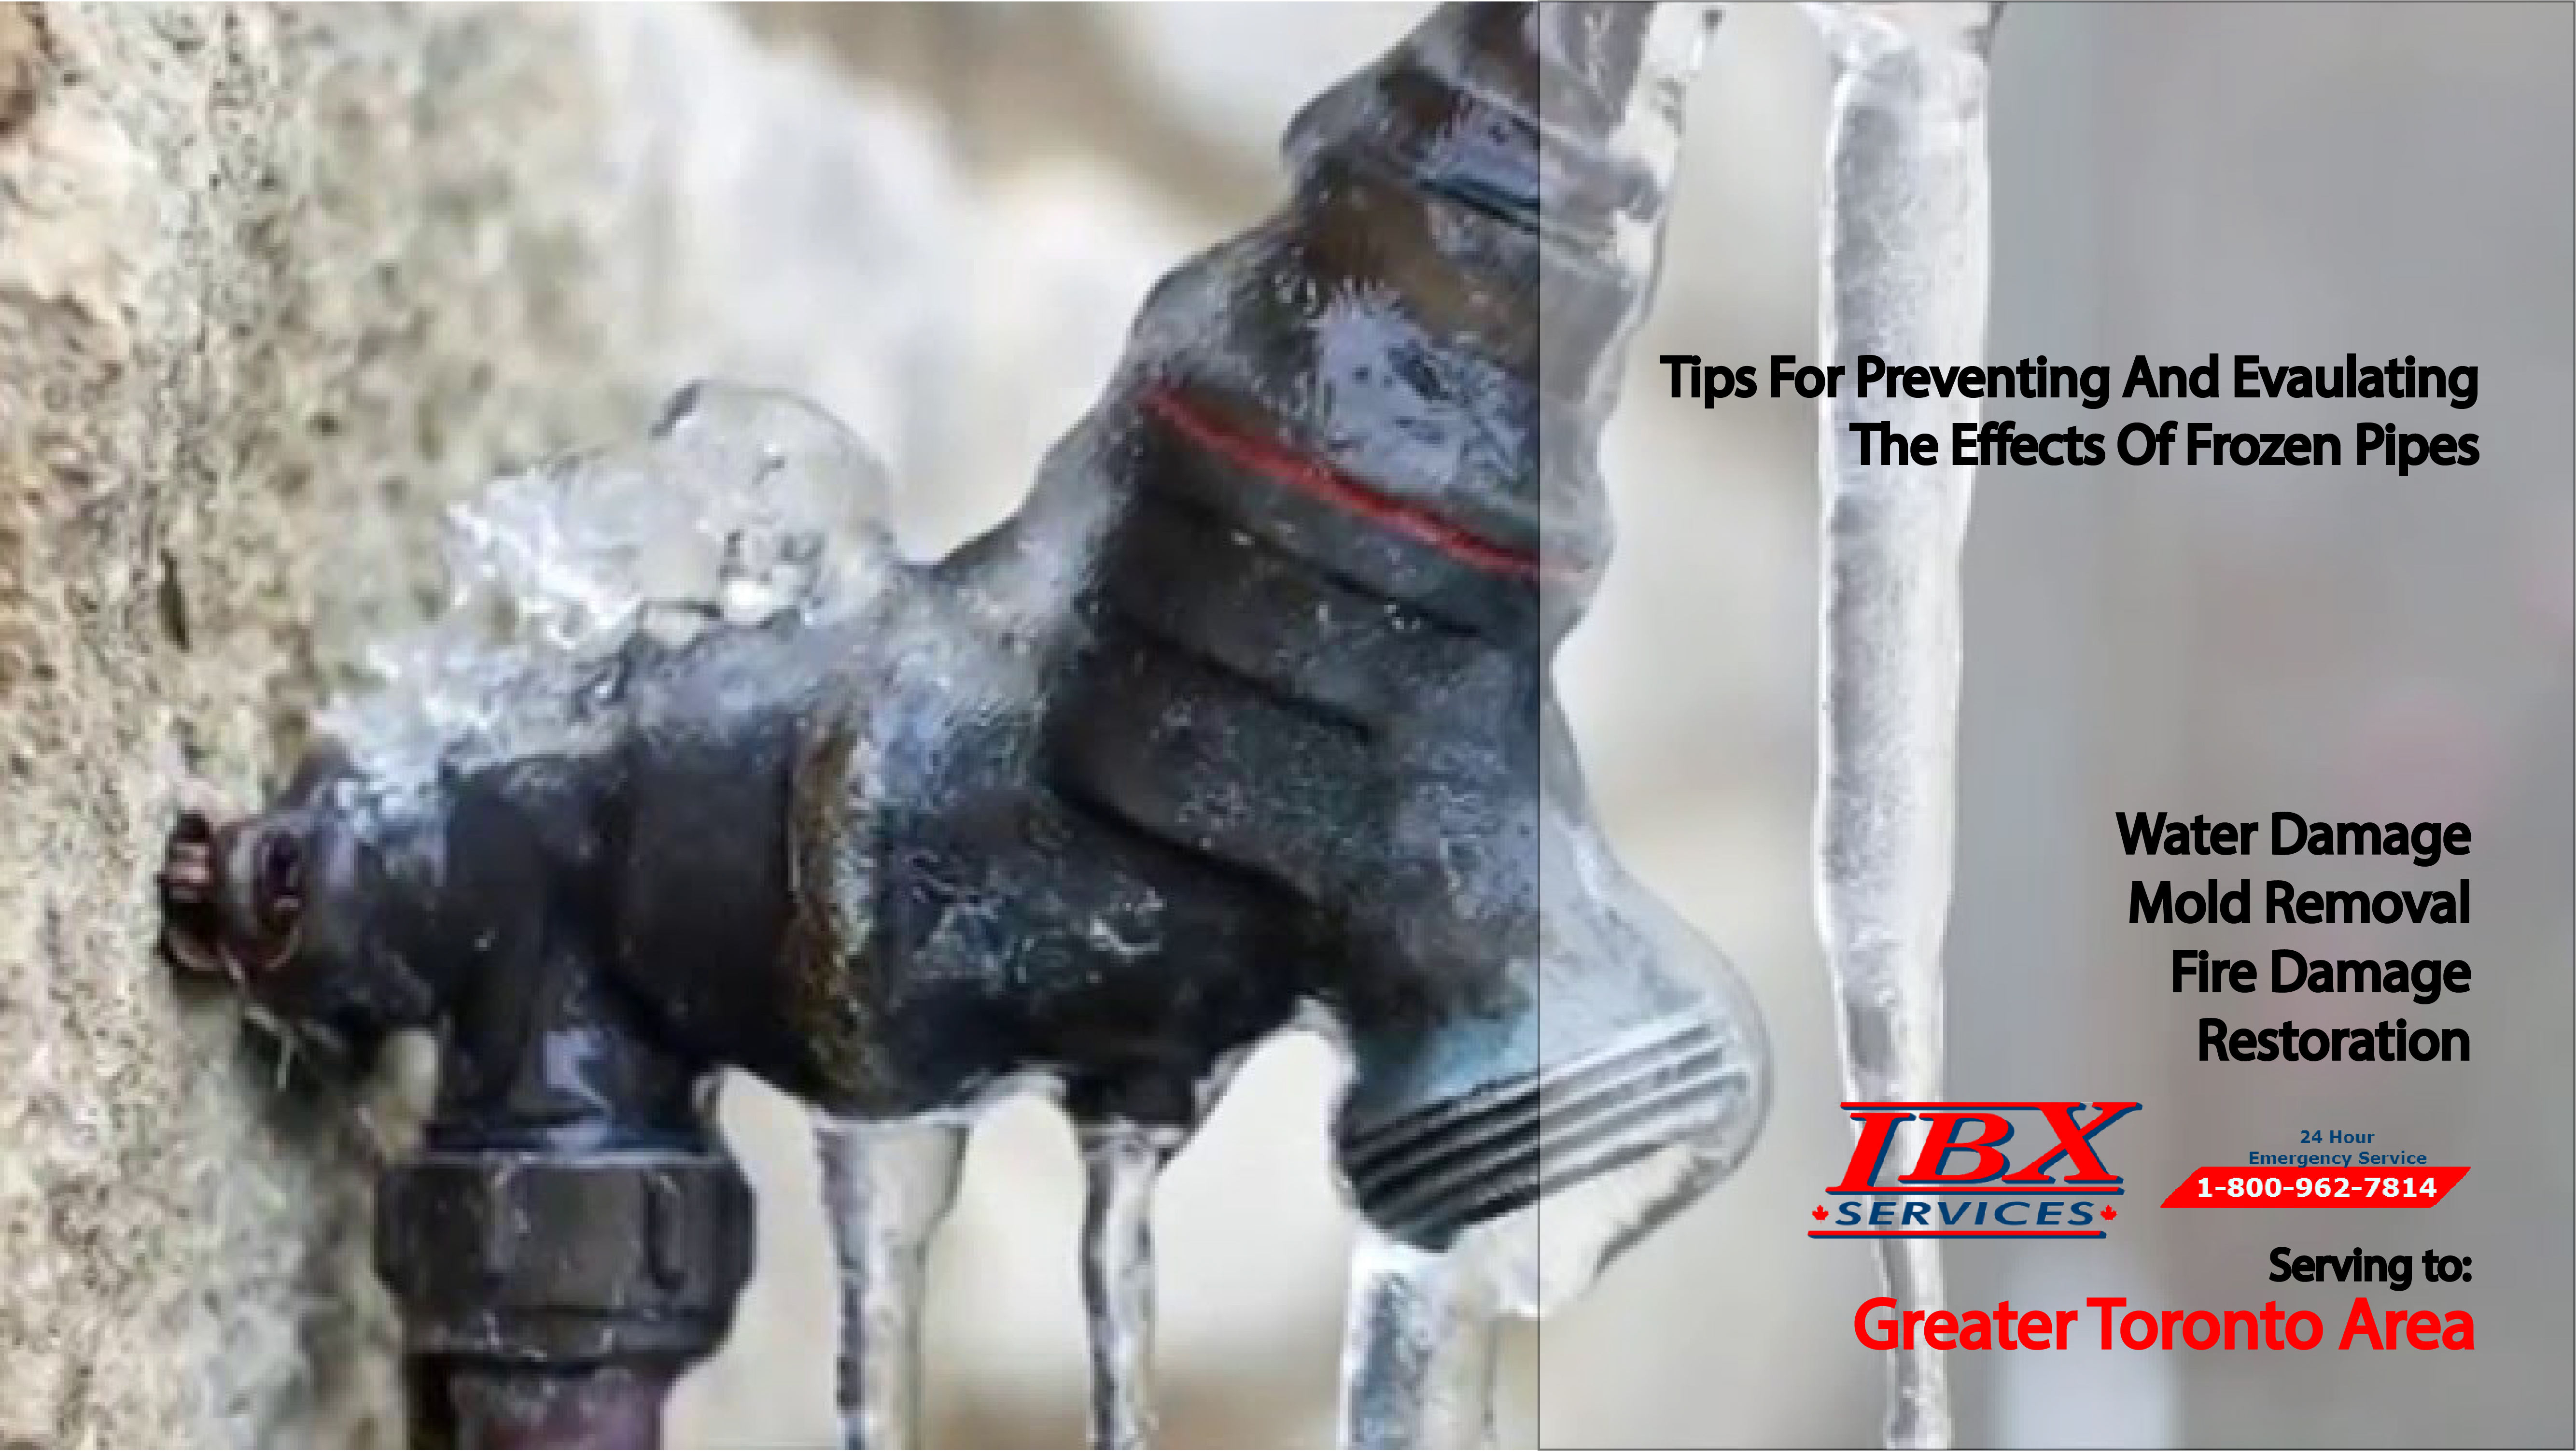 Three Quick Tips For Preventing And Evaulating The Effects Of Frozen Pipes